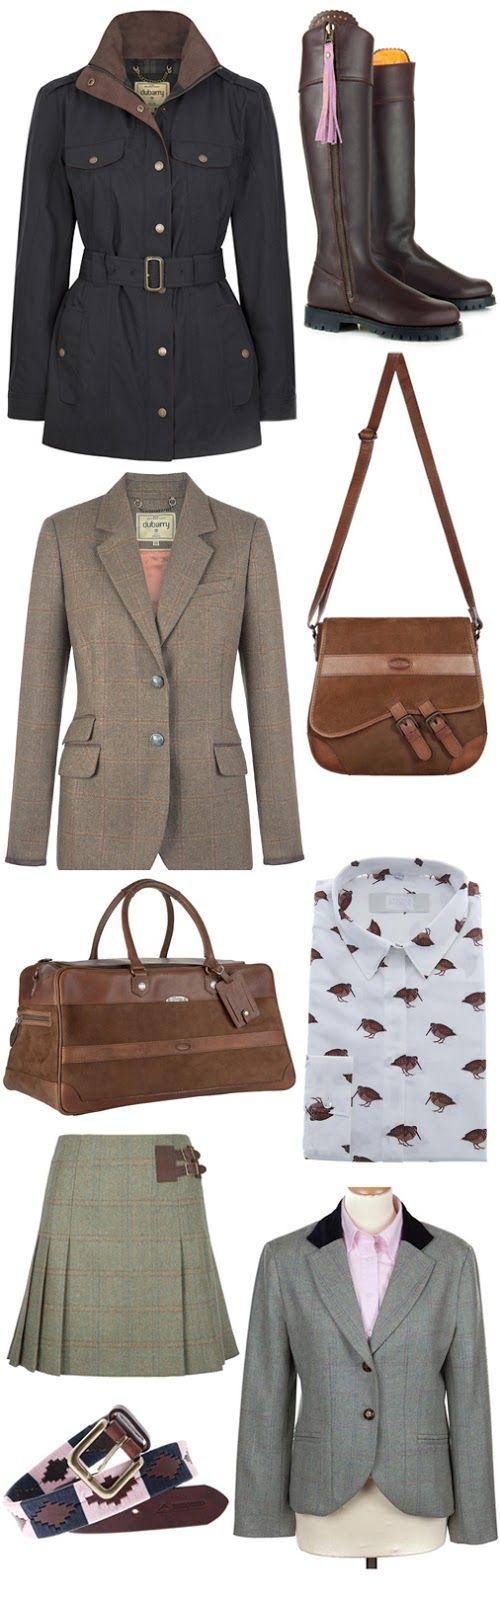 How to Dress for a Country Bank Holiday Weekend in England. See more here > http://www.charlotteinengland.com/2015/08/how-to-dress-for-country-bank-holiday.html